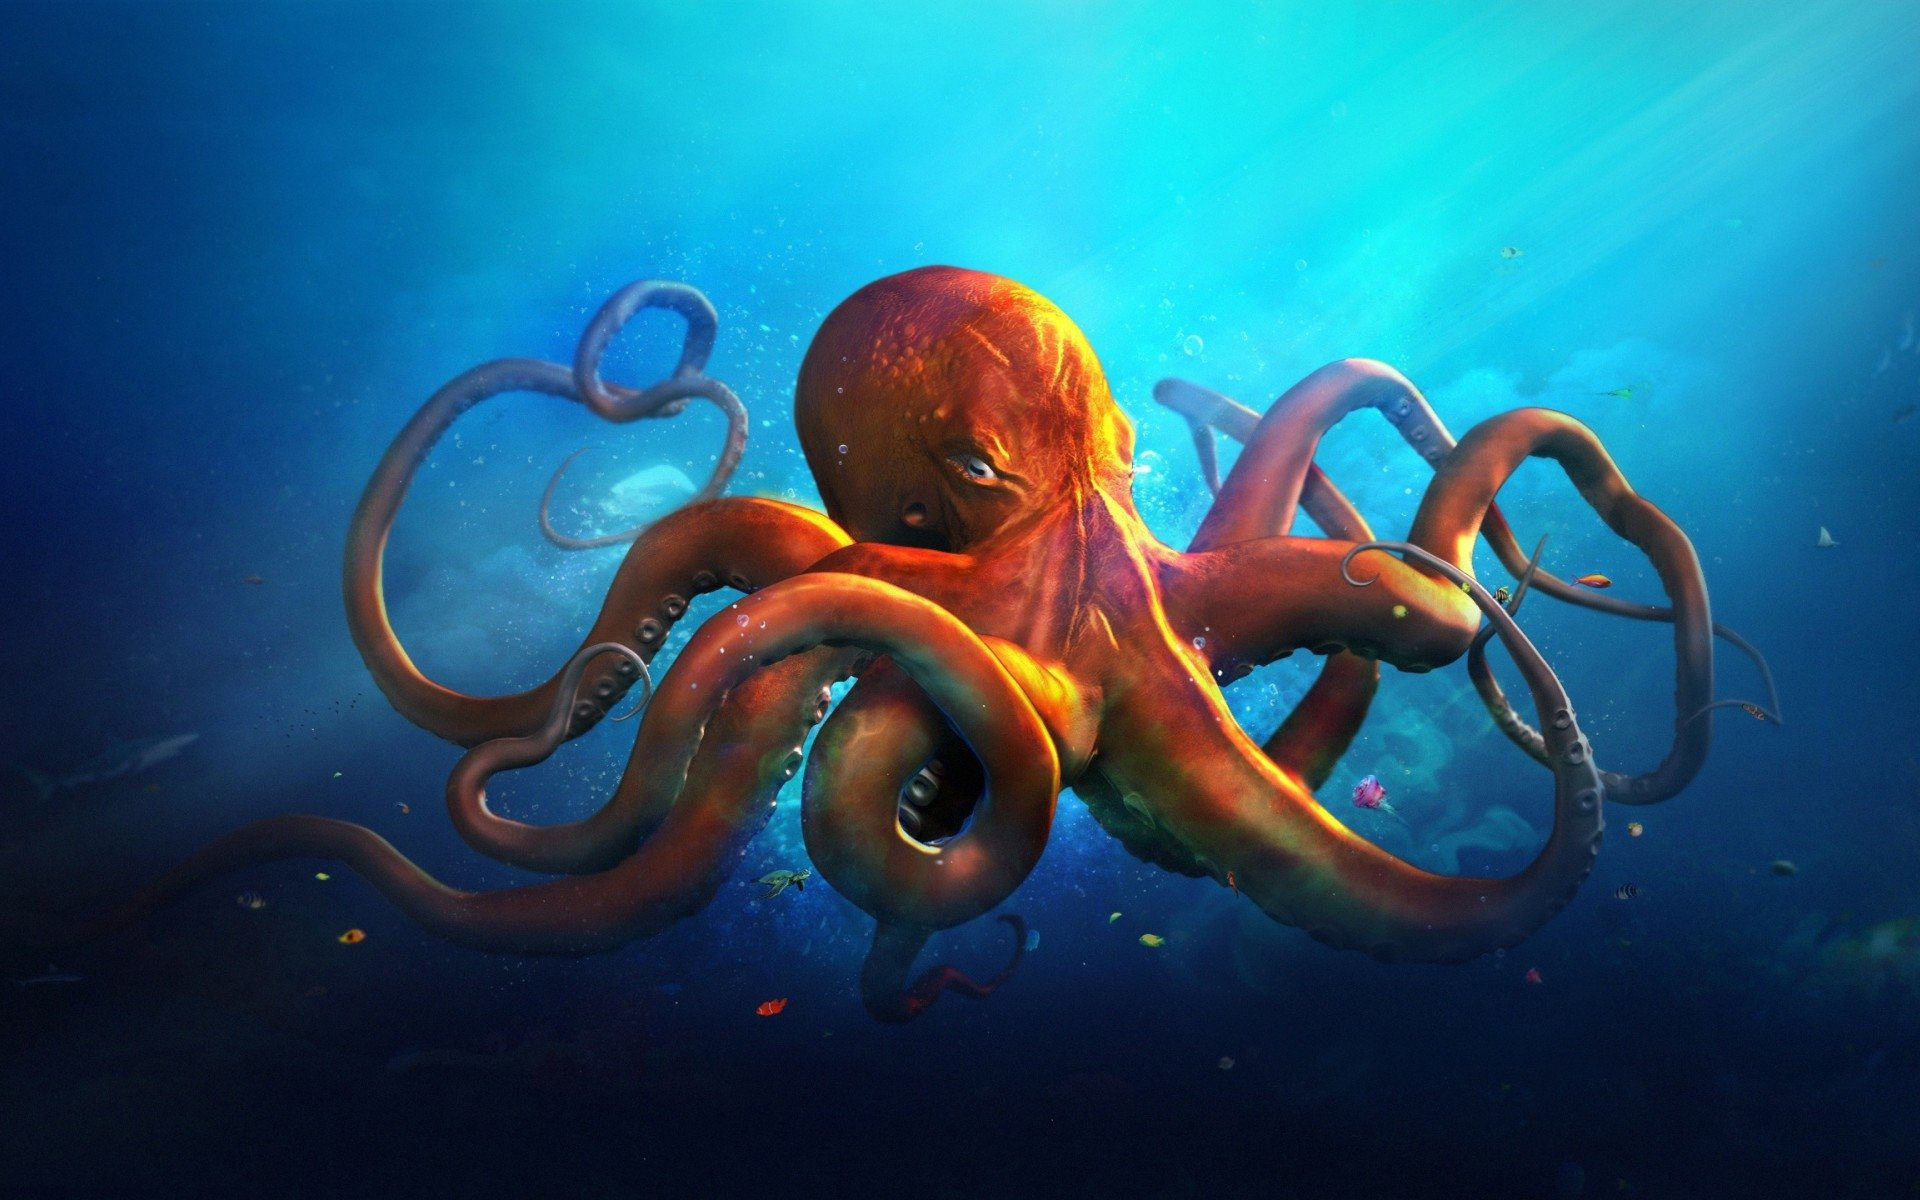 Download hd 1920x1200 Octopus PC wallpaper ID:350567 for free